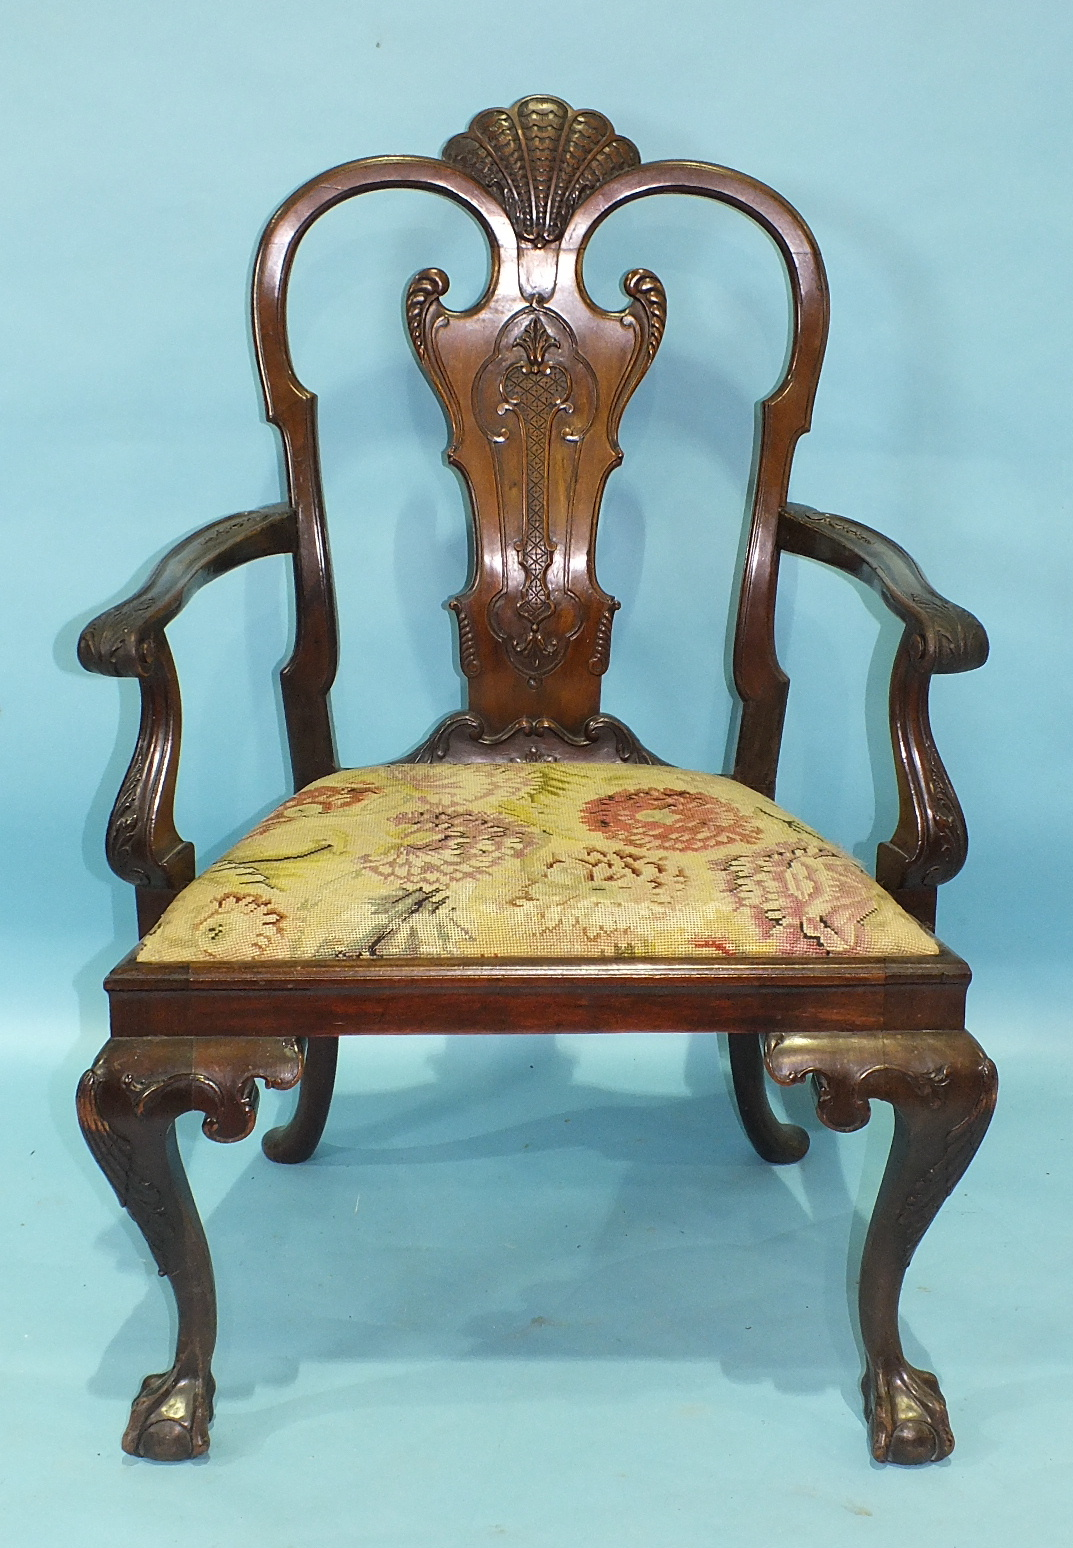 A Chippendale-style mahogany carver chair of generous proportions, the carved frame and drop-in seat